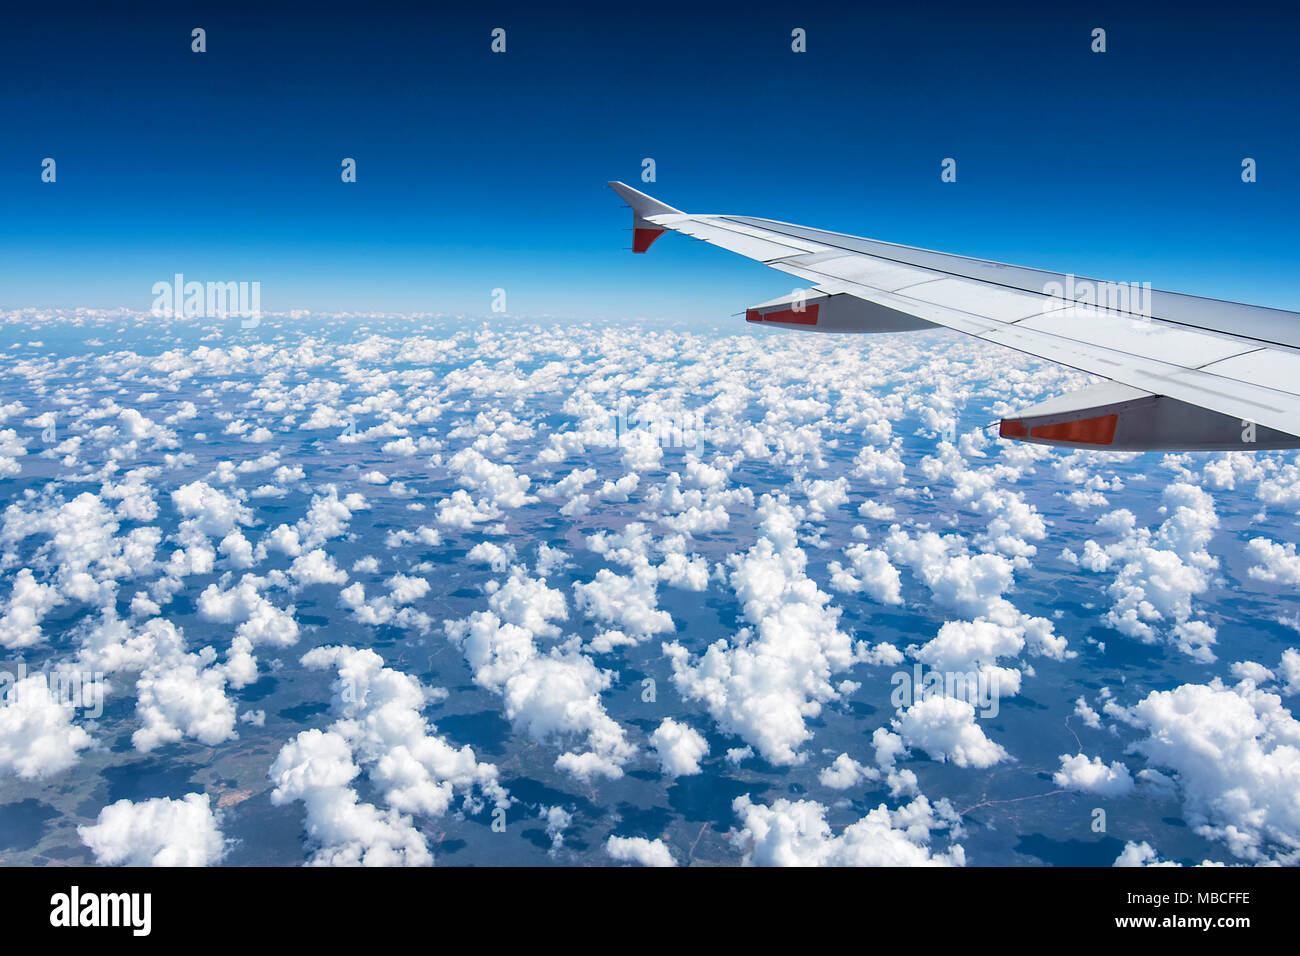 Wing of a commercial airliner flying over fluffy white cumulus clouds, Australia Stock Photo